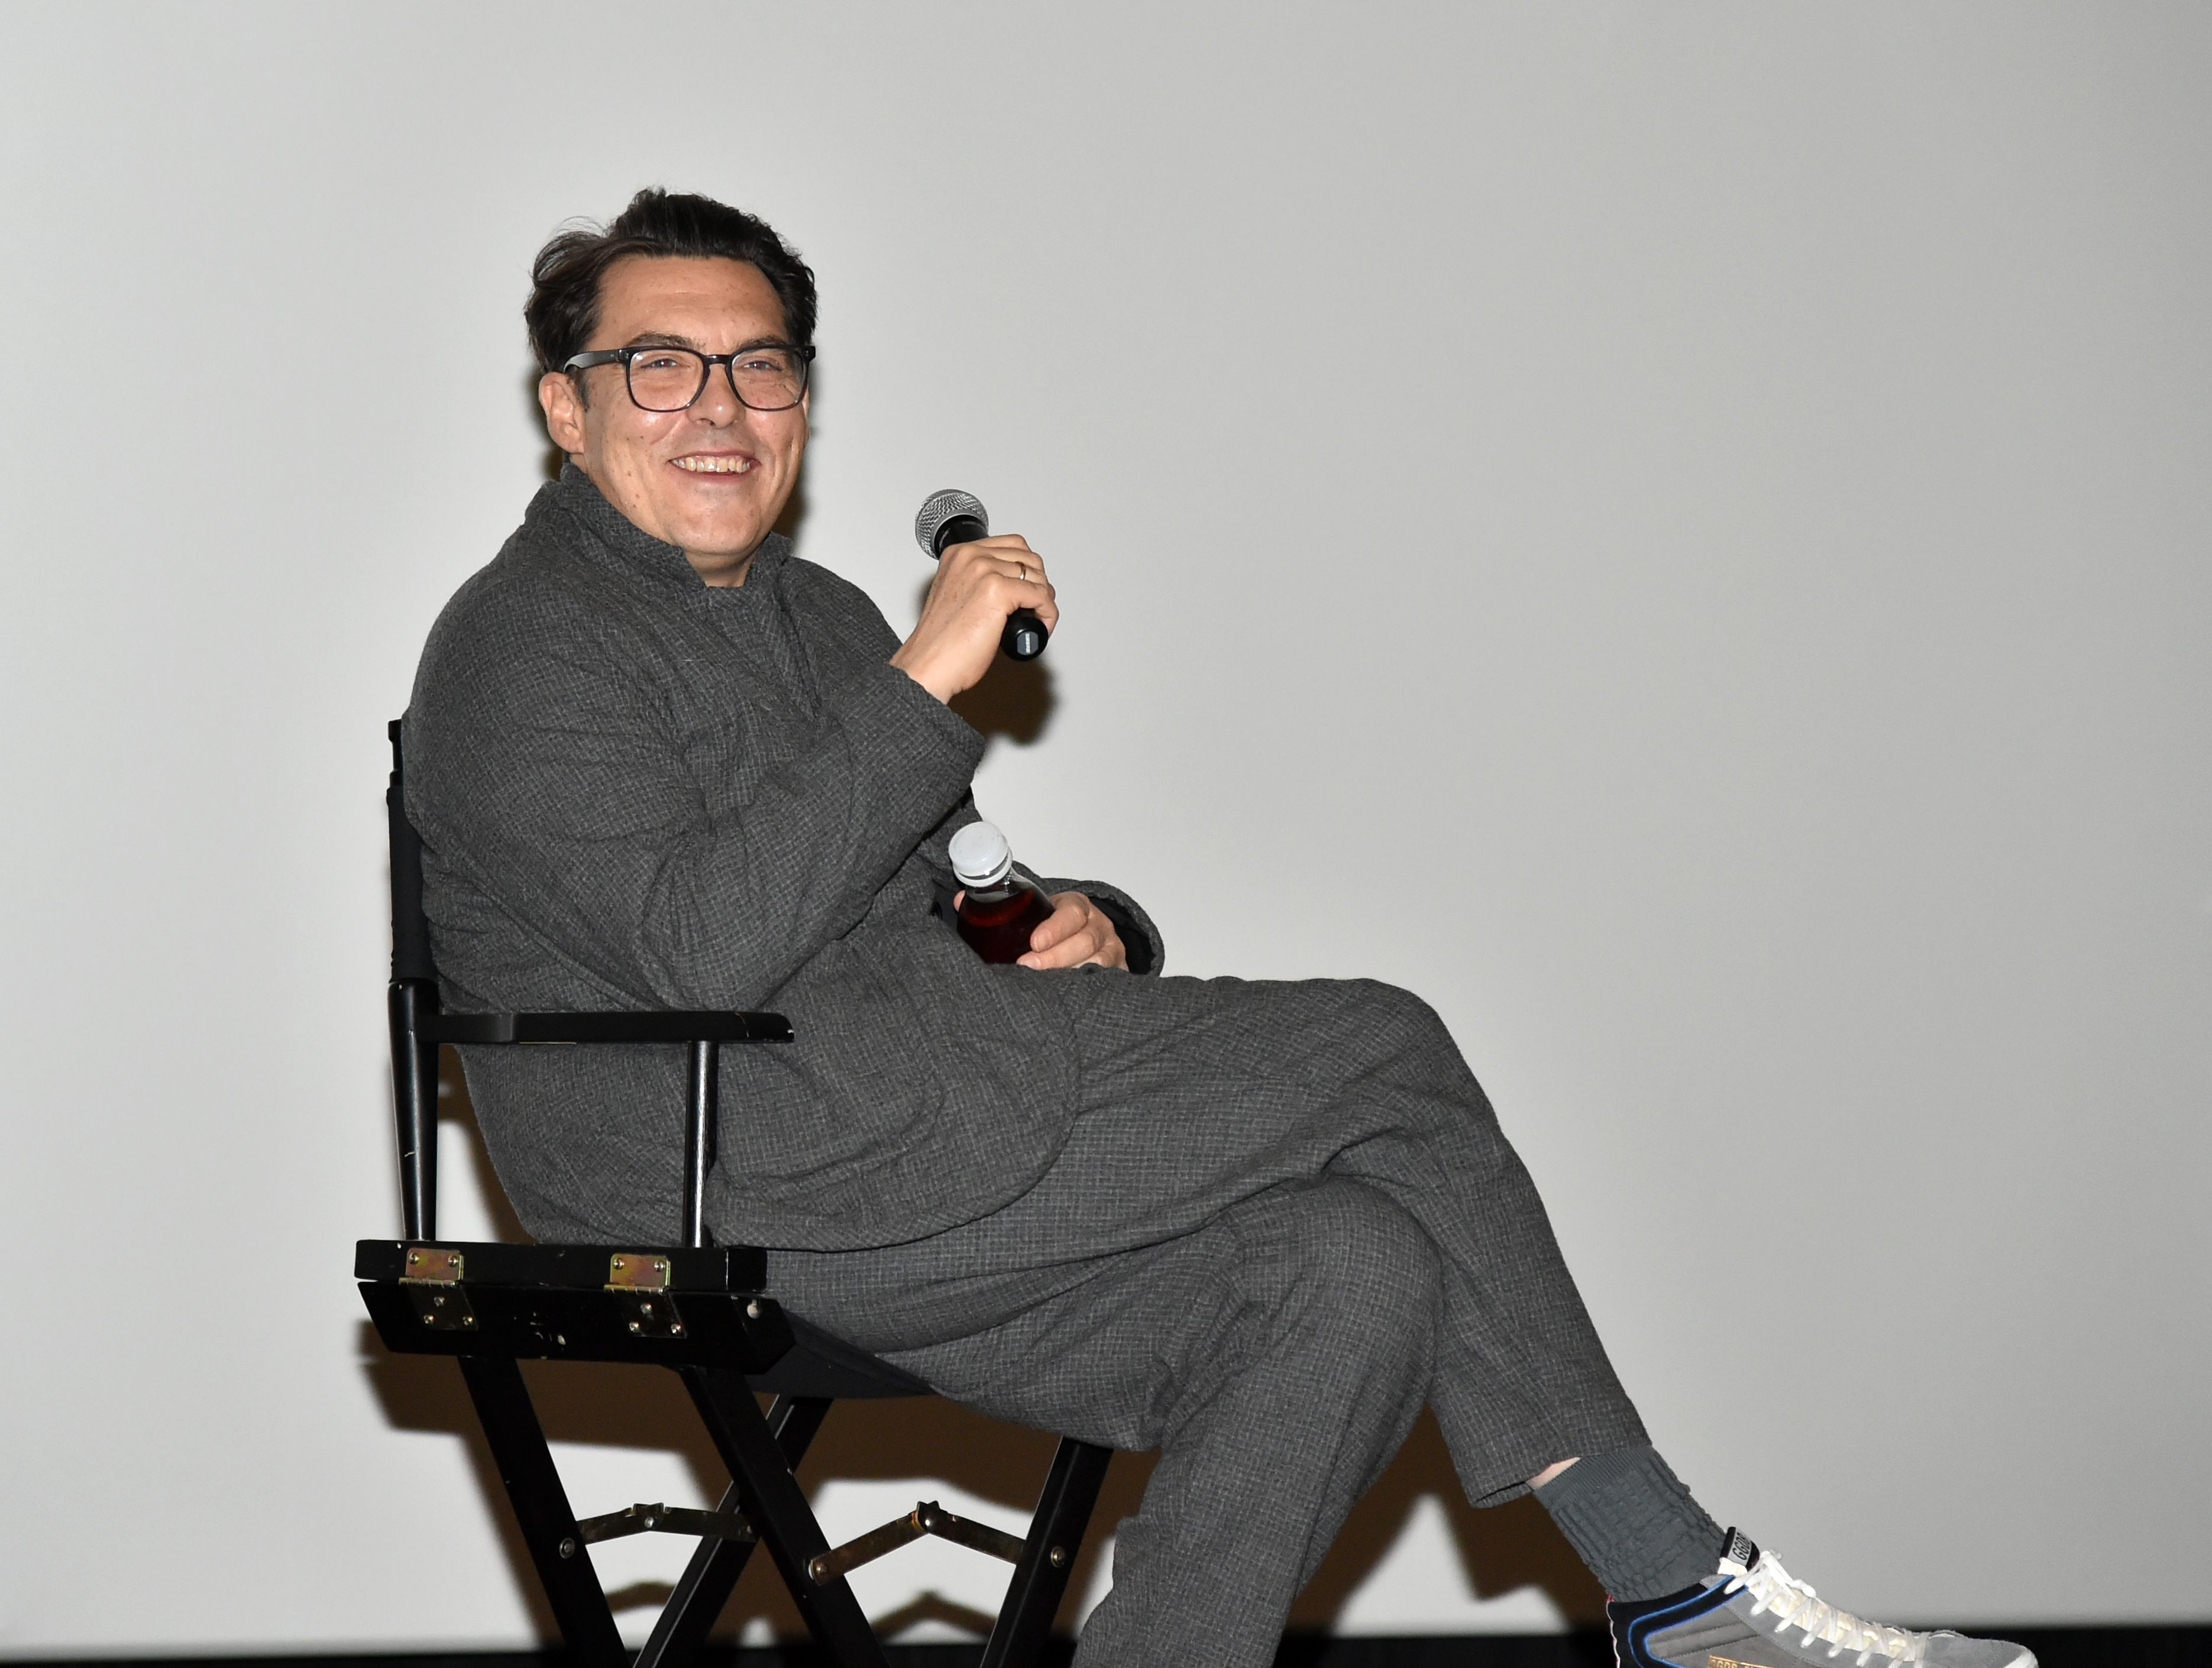 Joe Wright'The Darkest Hour' film screening presented by IndieWire and Focus Features Sneak Peek, New York, USA - 13 Nov 2017